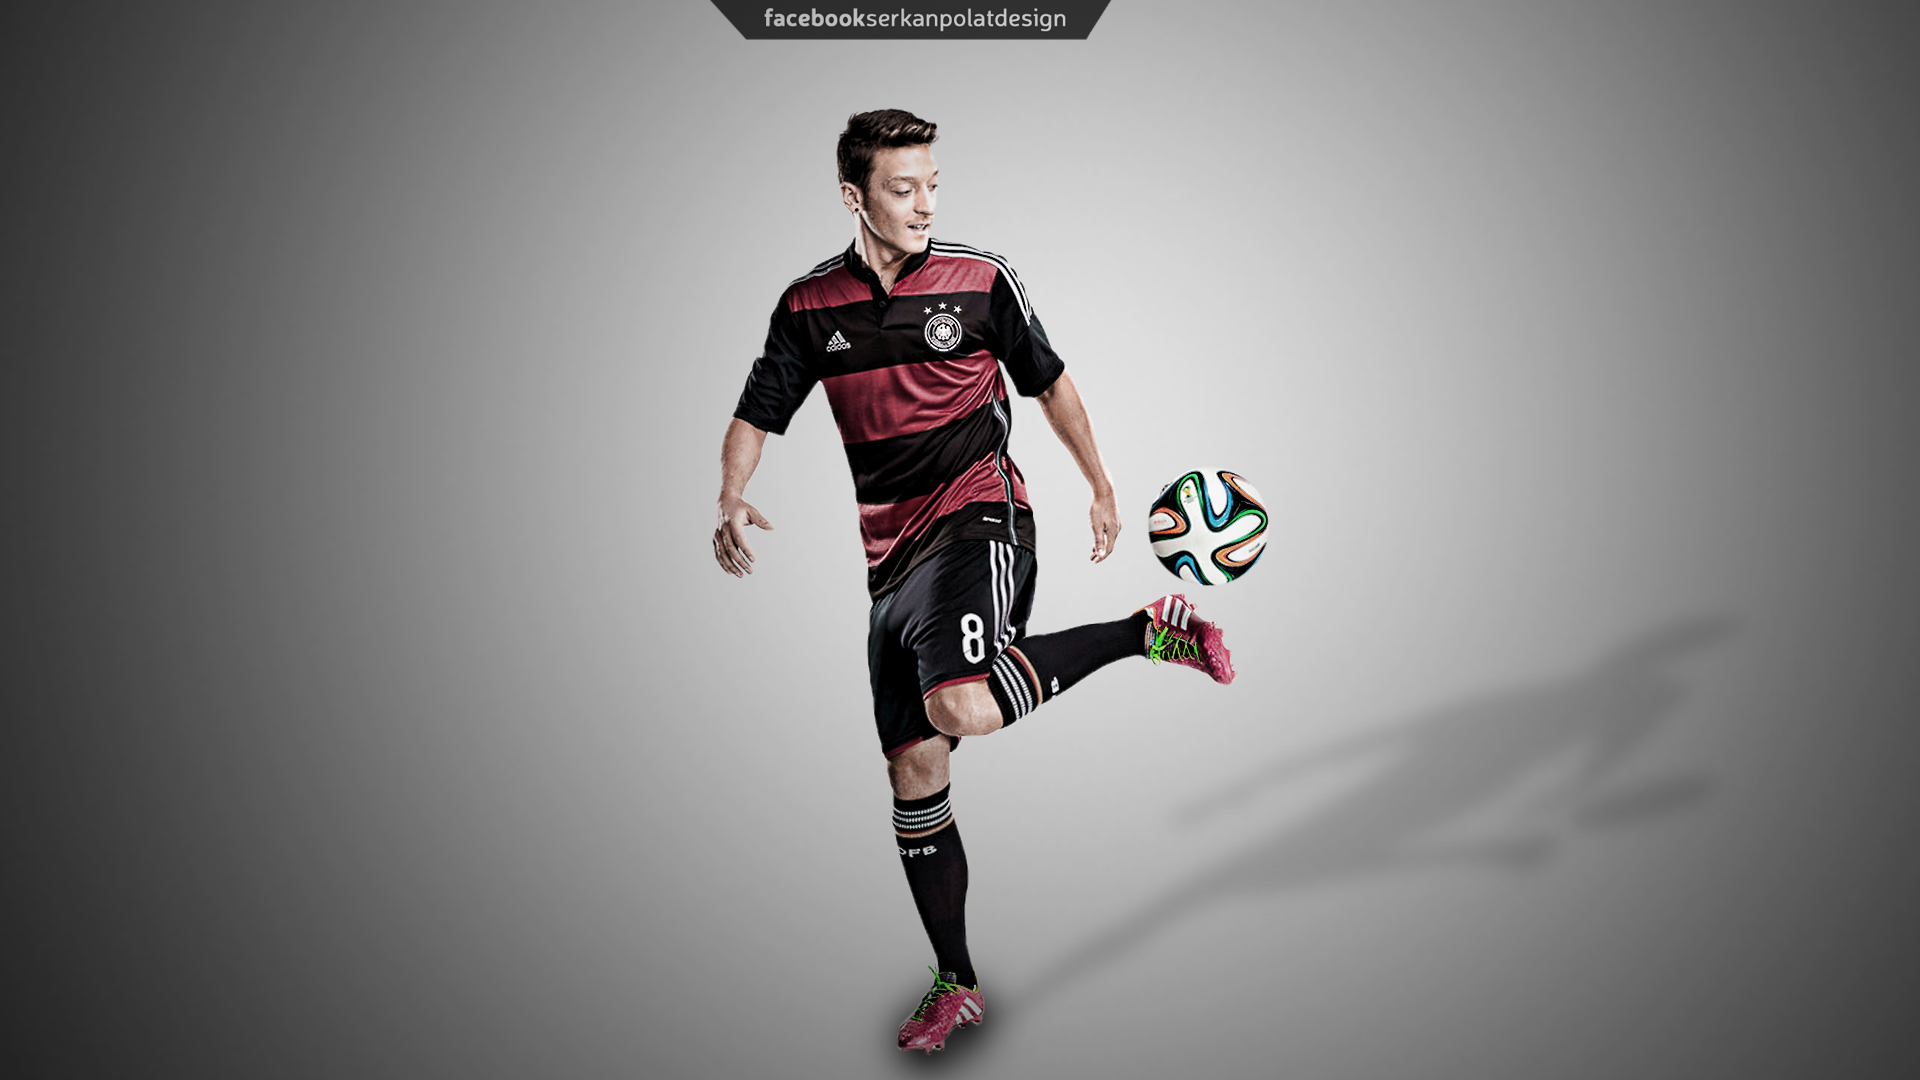 Mesut Ozil Wallpapers: Mesut Ozil Wallpapers Images Photos Pictures Backgrounds